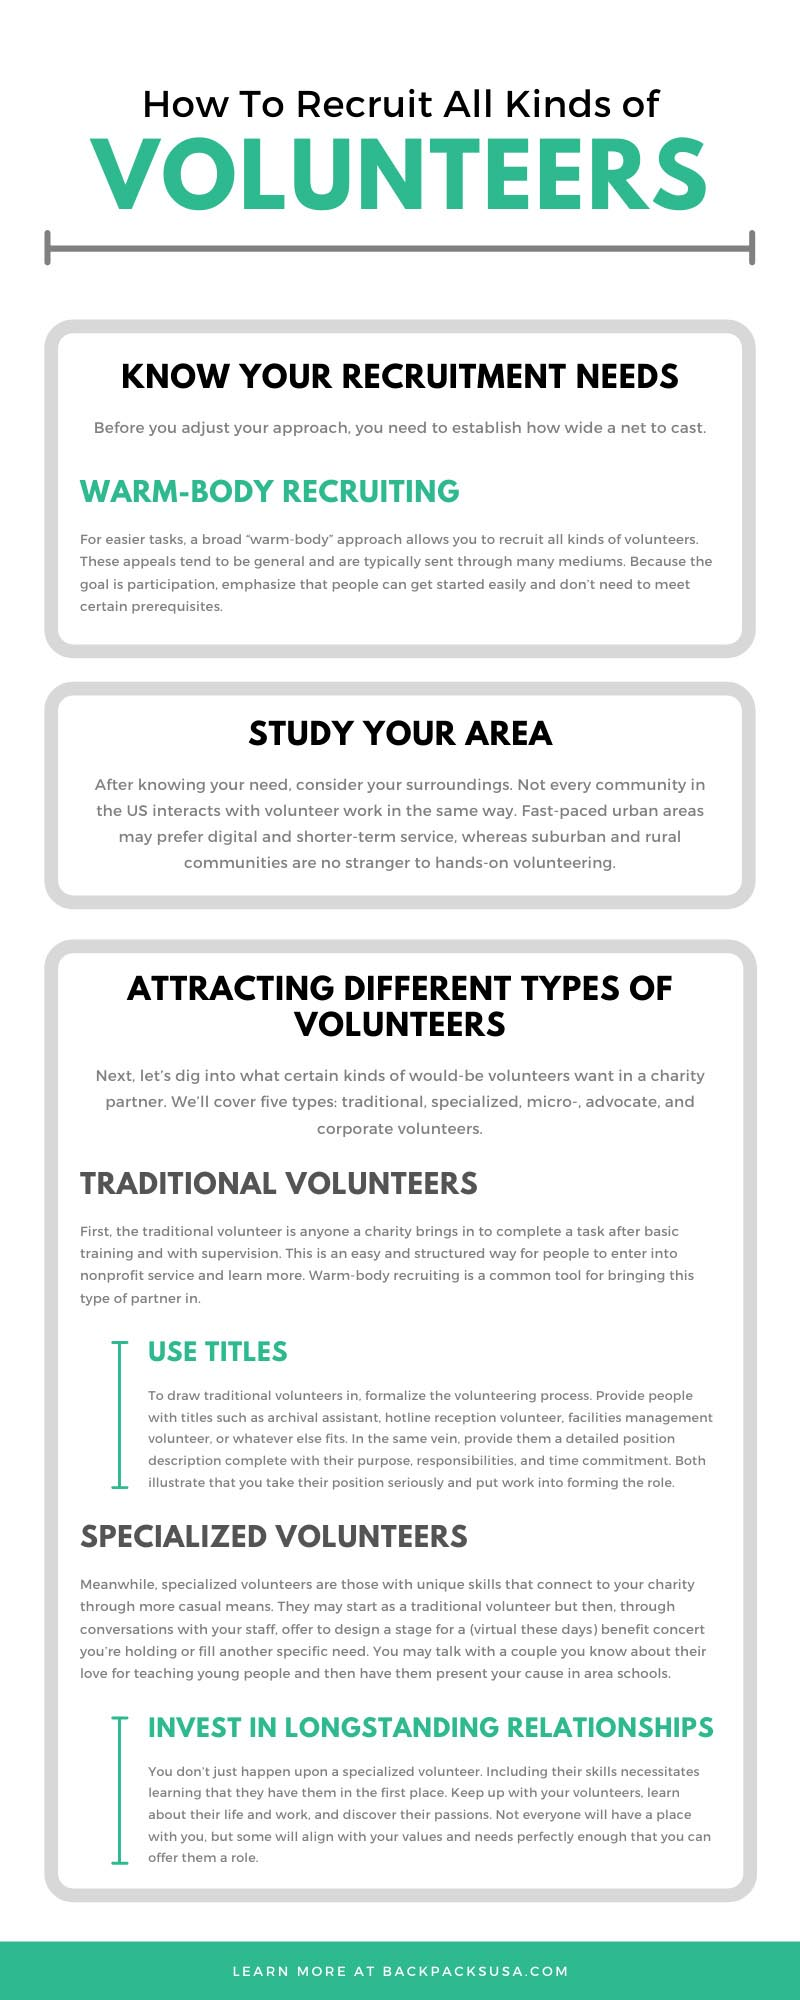 How To Recruit All Kinds of Volunteers